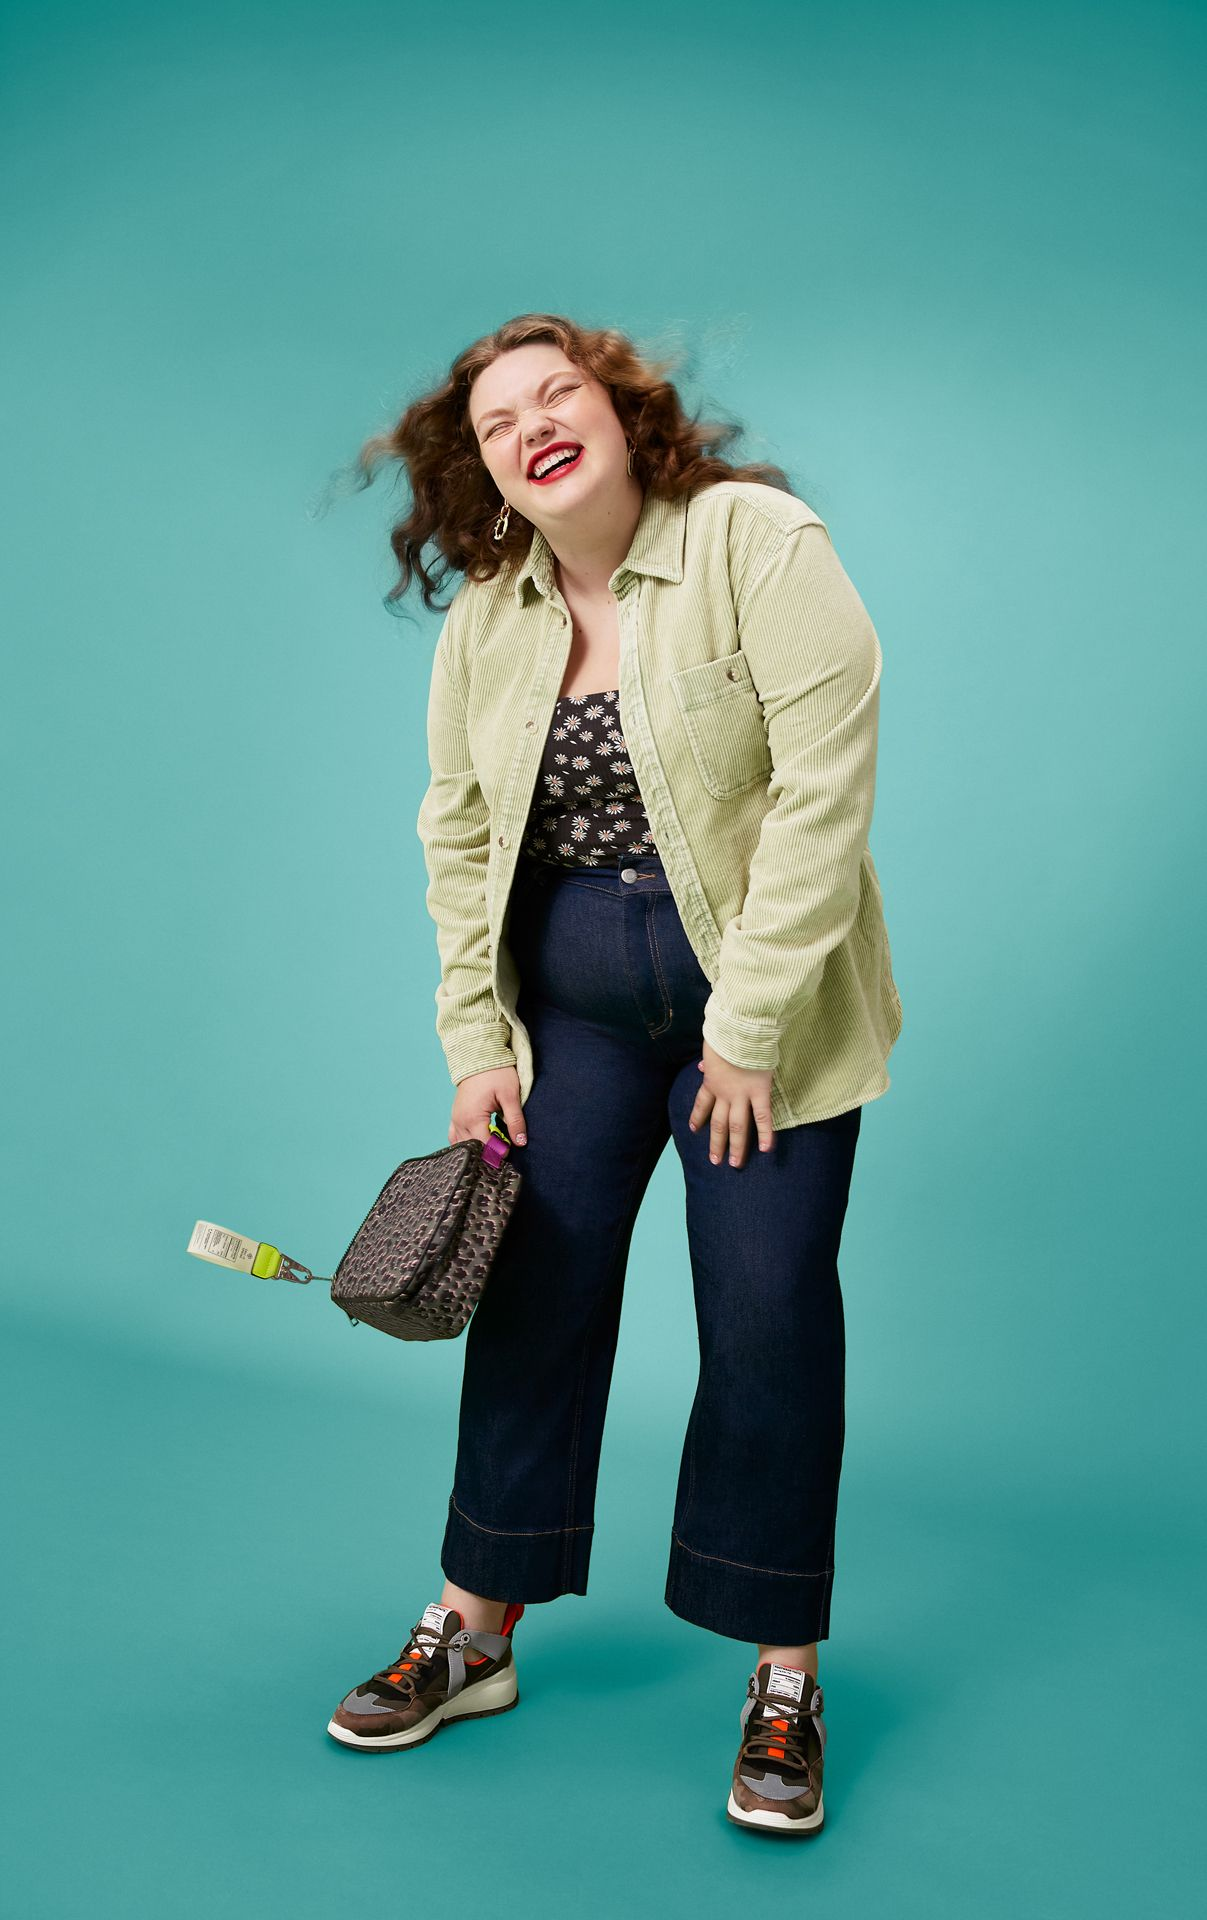 Curvy lady smiling with her hair in the wind. She is in front of a turquoise background and wears blue jeans, green corduroy shirt, Call It Spring shoes and holds a Call It Spring purse.